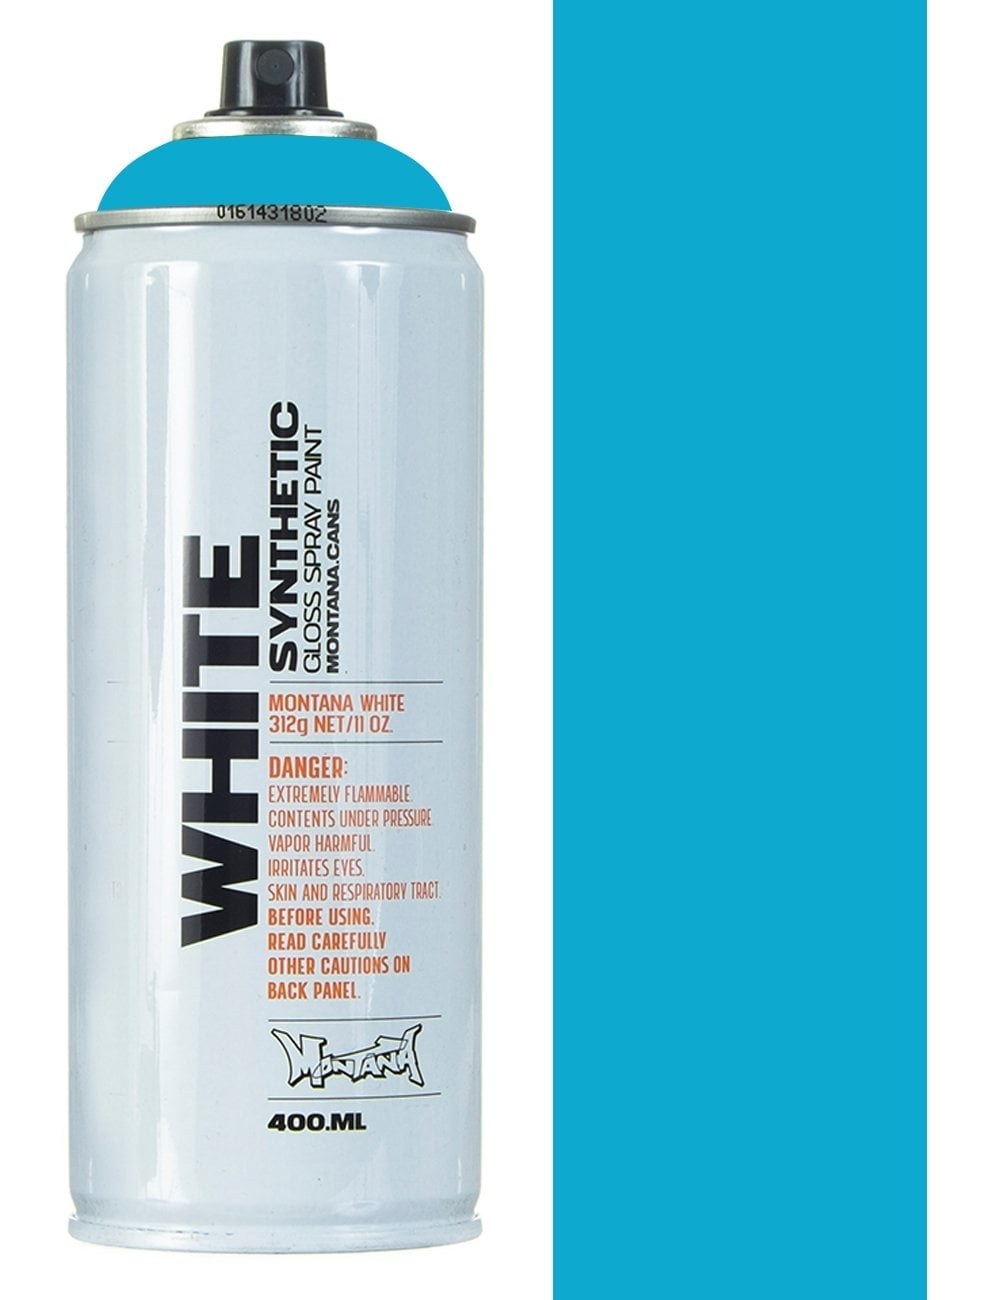 Montana White Light Blue Spray Paint 400ml Spray Paint